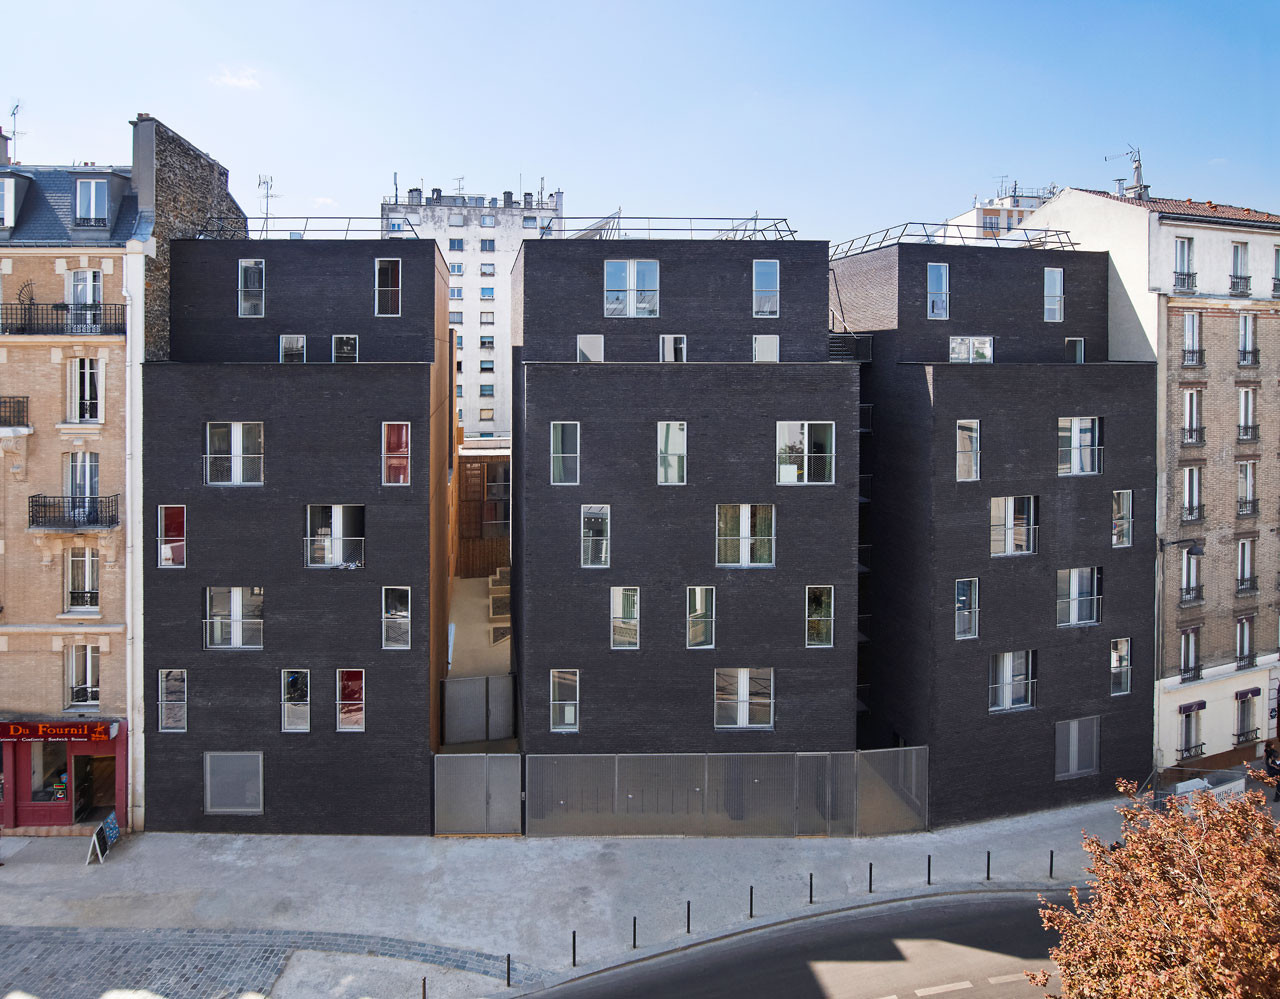 Student residence in paris lan architecture archdaily for Architecture student